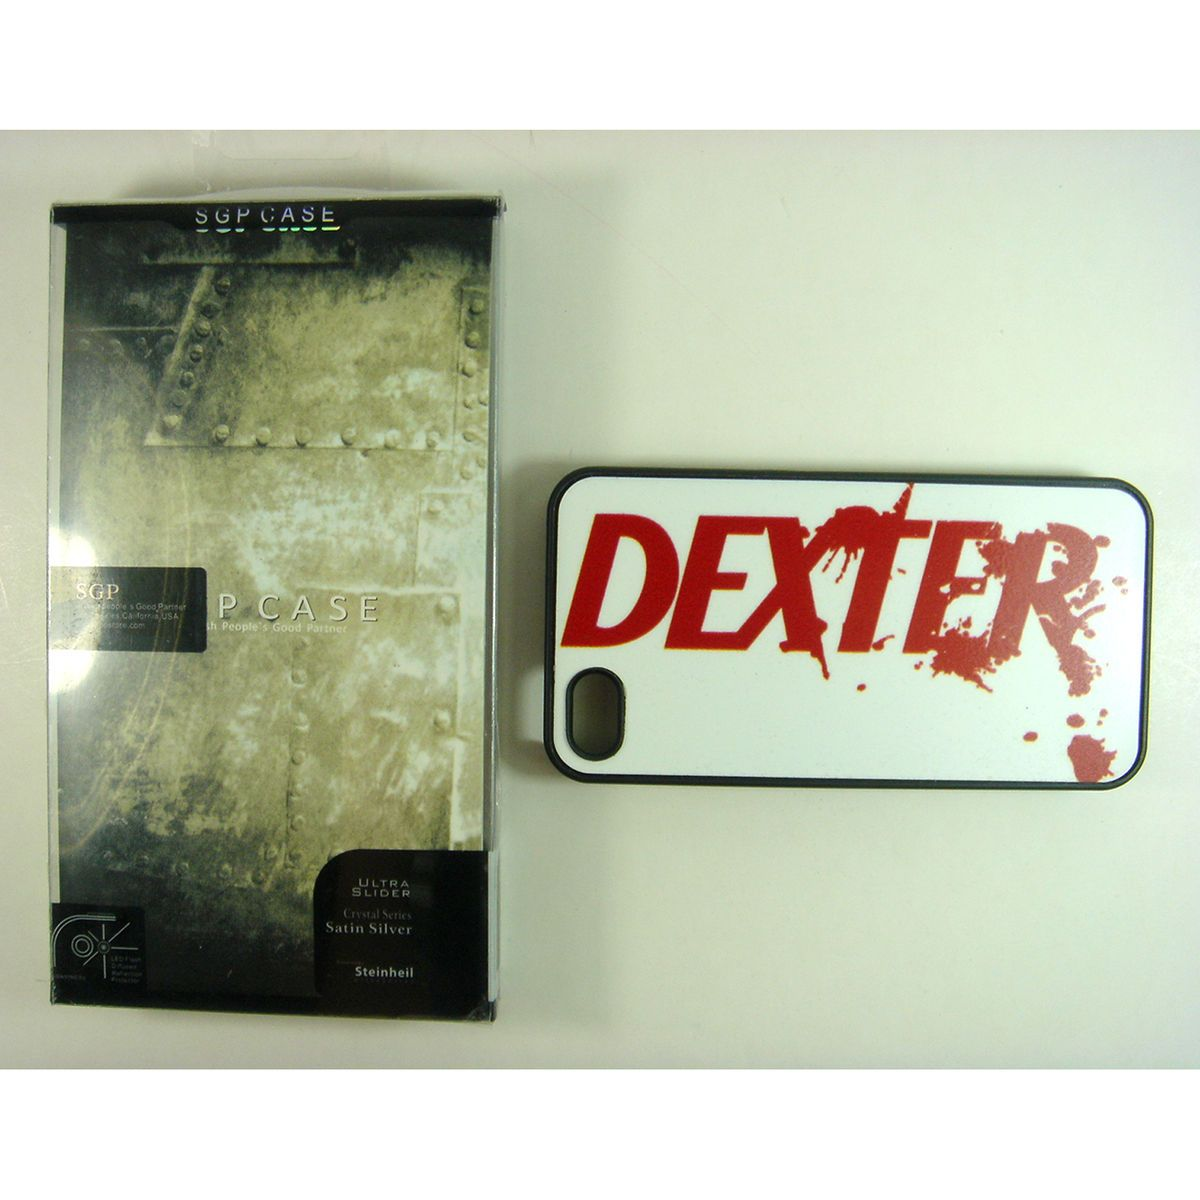 Dexter Logo Hard Cover Case For Mobile Phone iPhone 4 4G 4S In Box